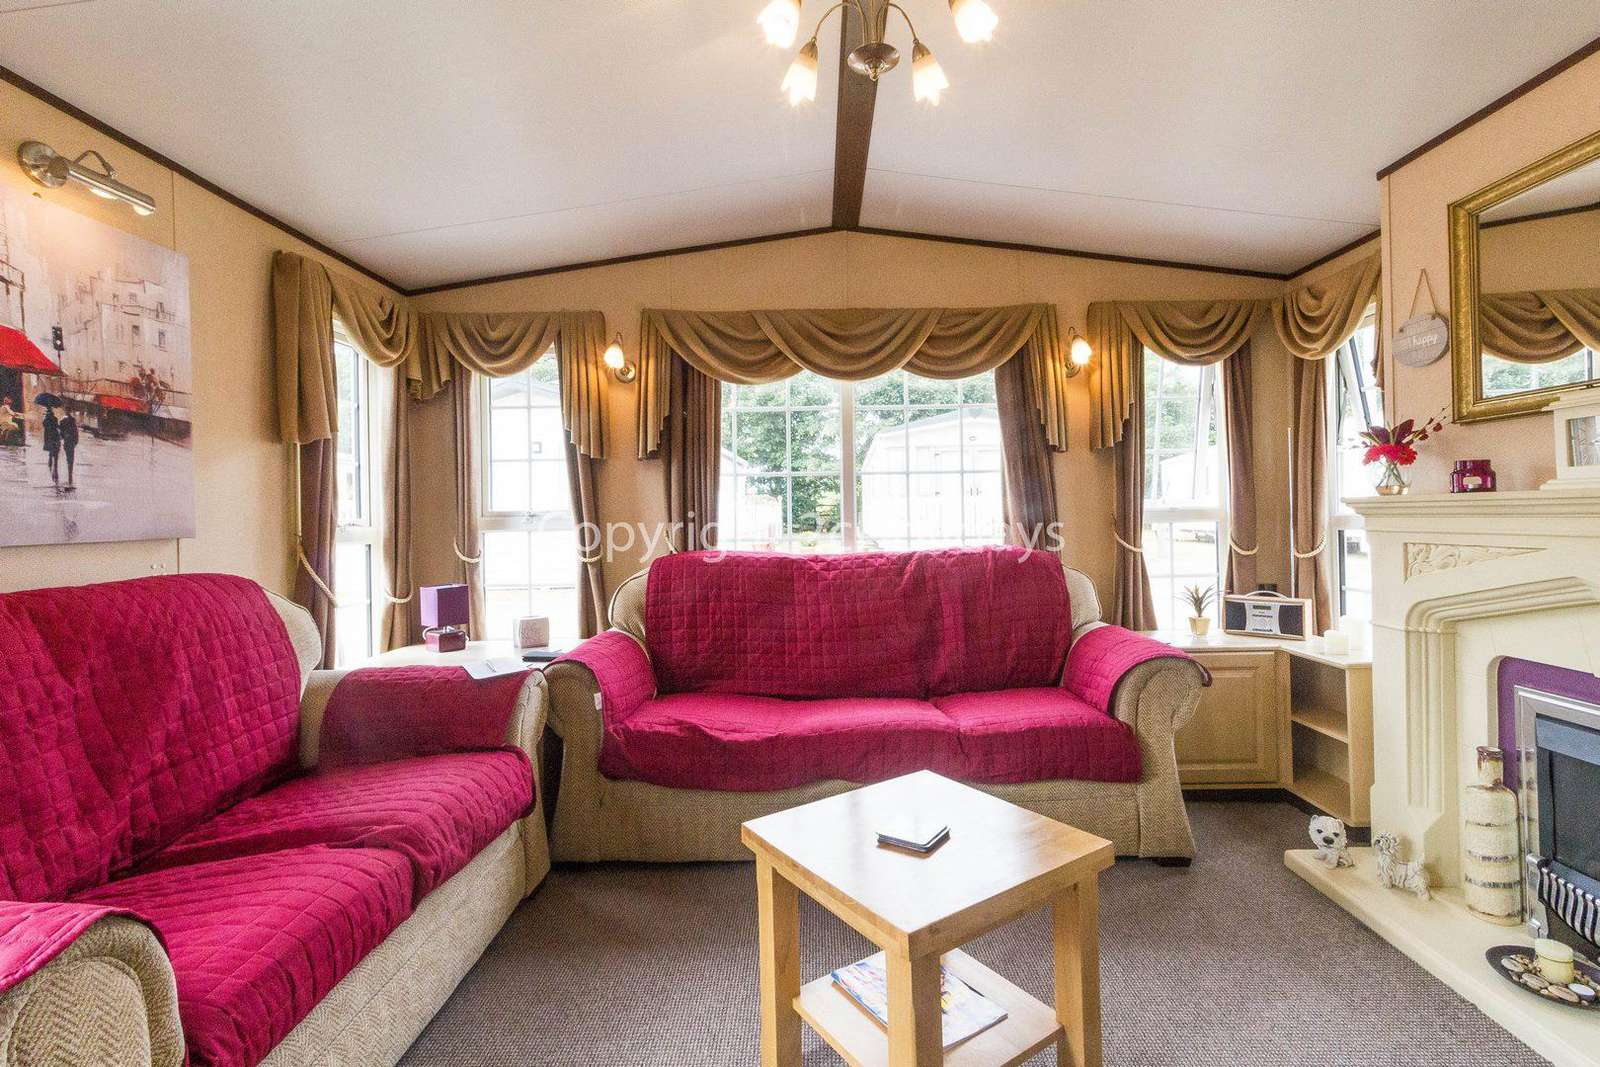 Caravan for hire with a spacious lounge.